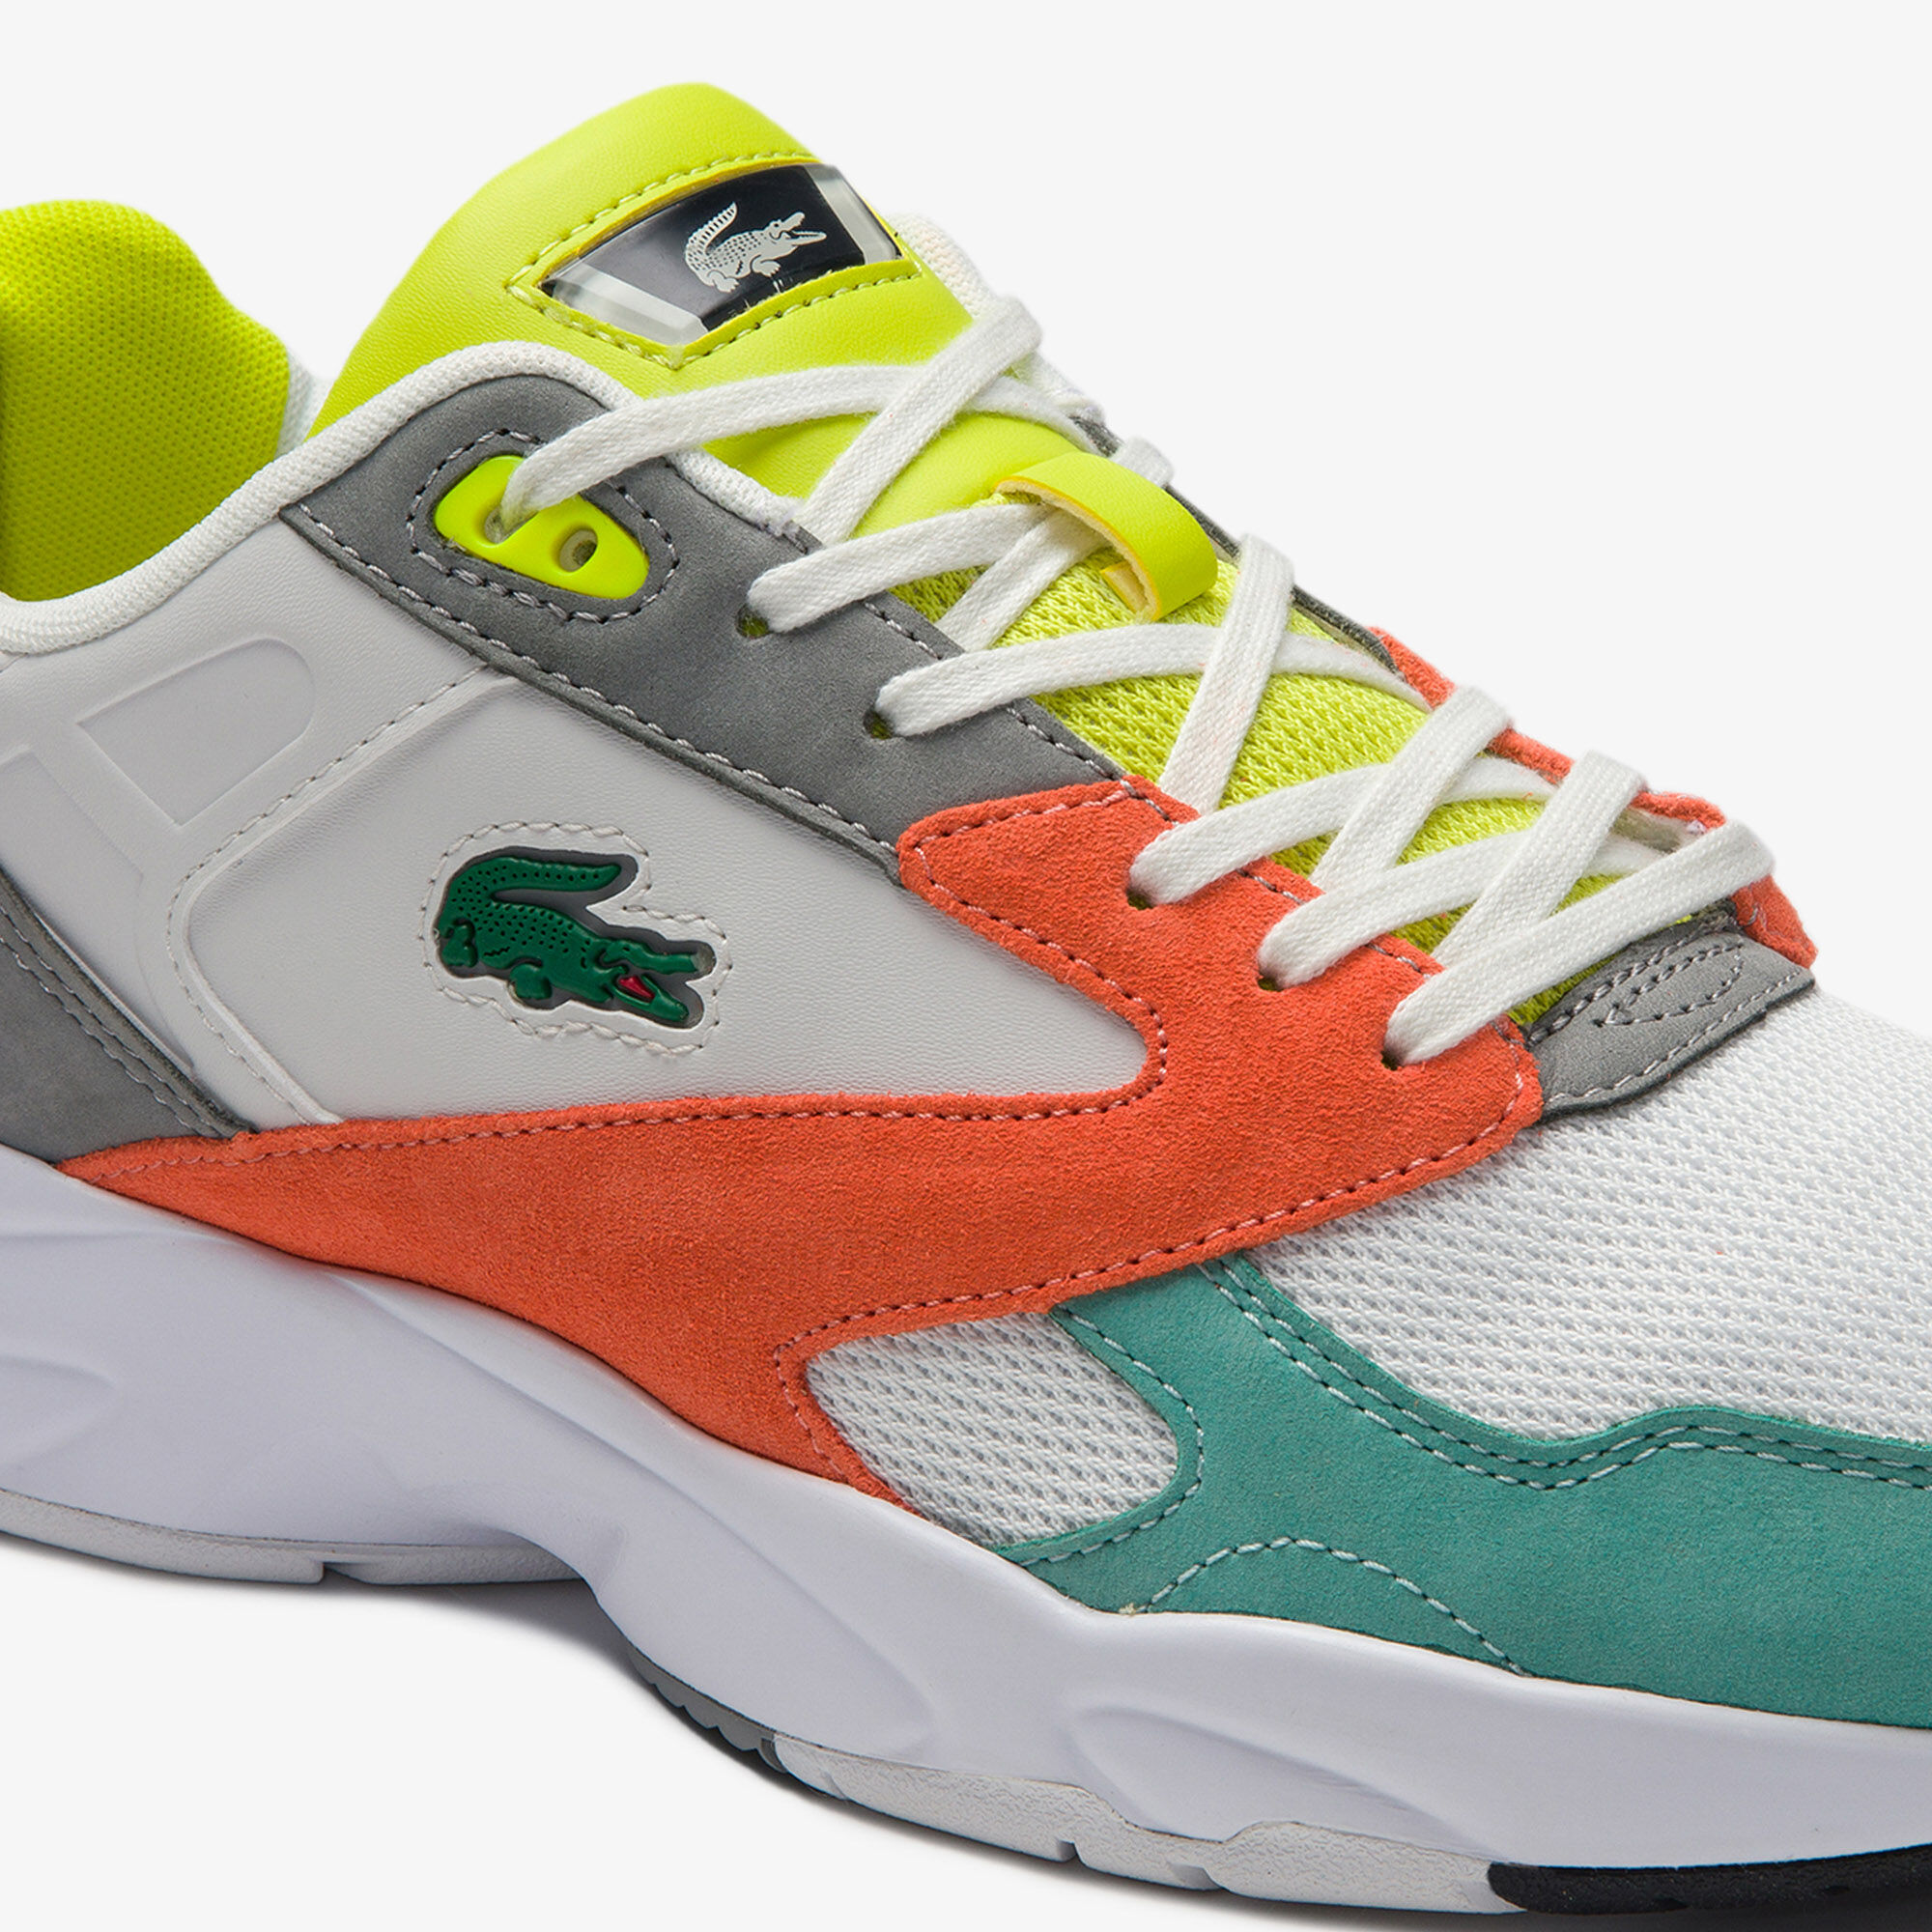 Men's Storm 96 Textile, Synthetic and Leather Trainers